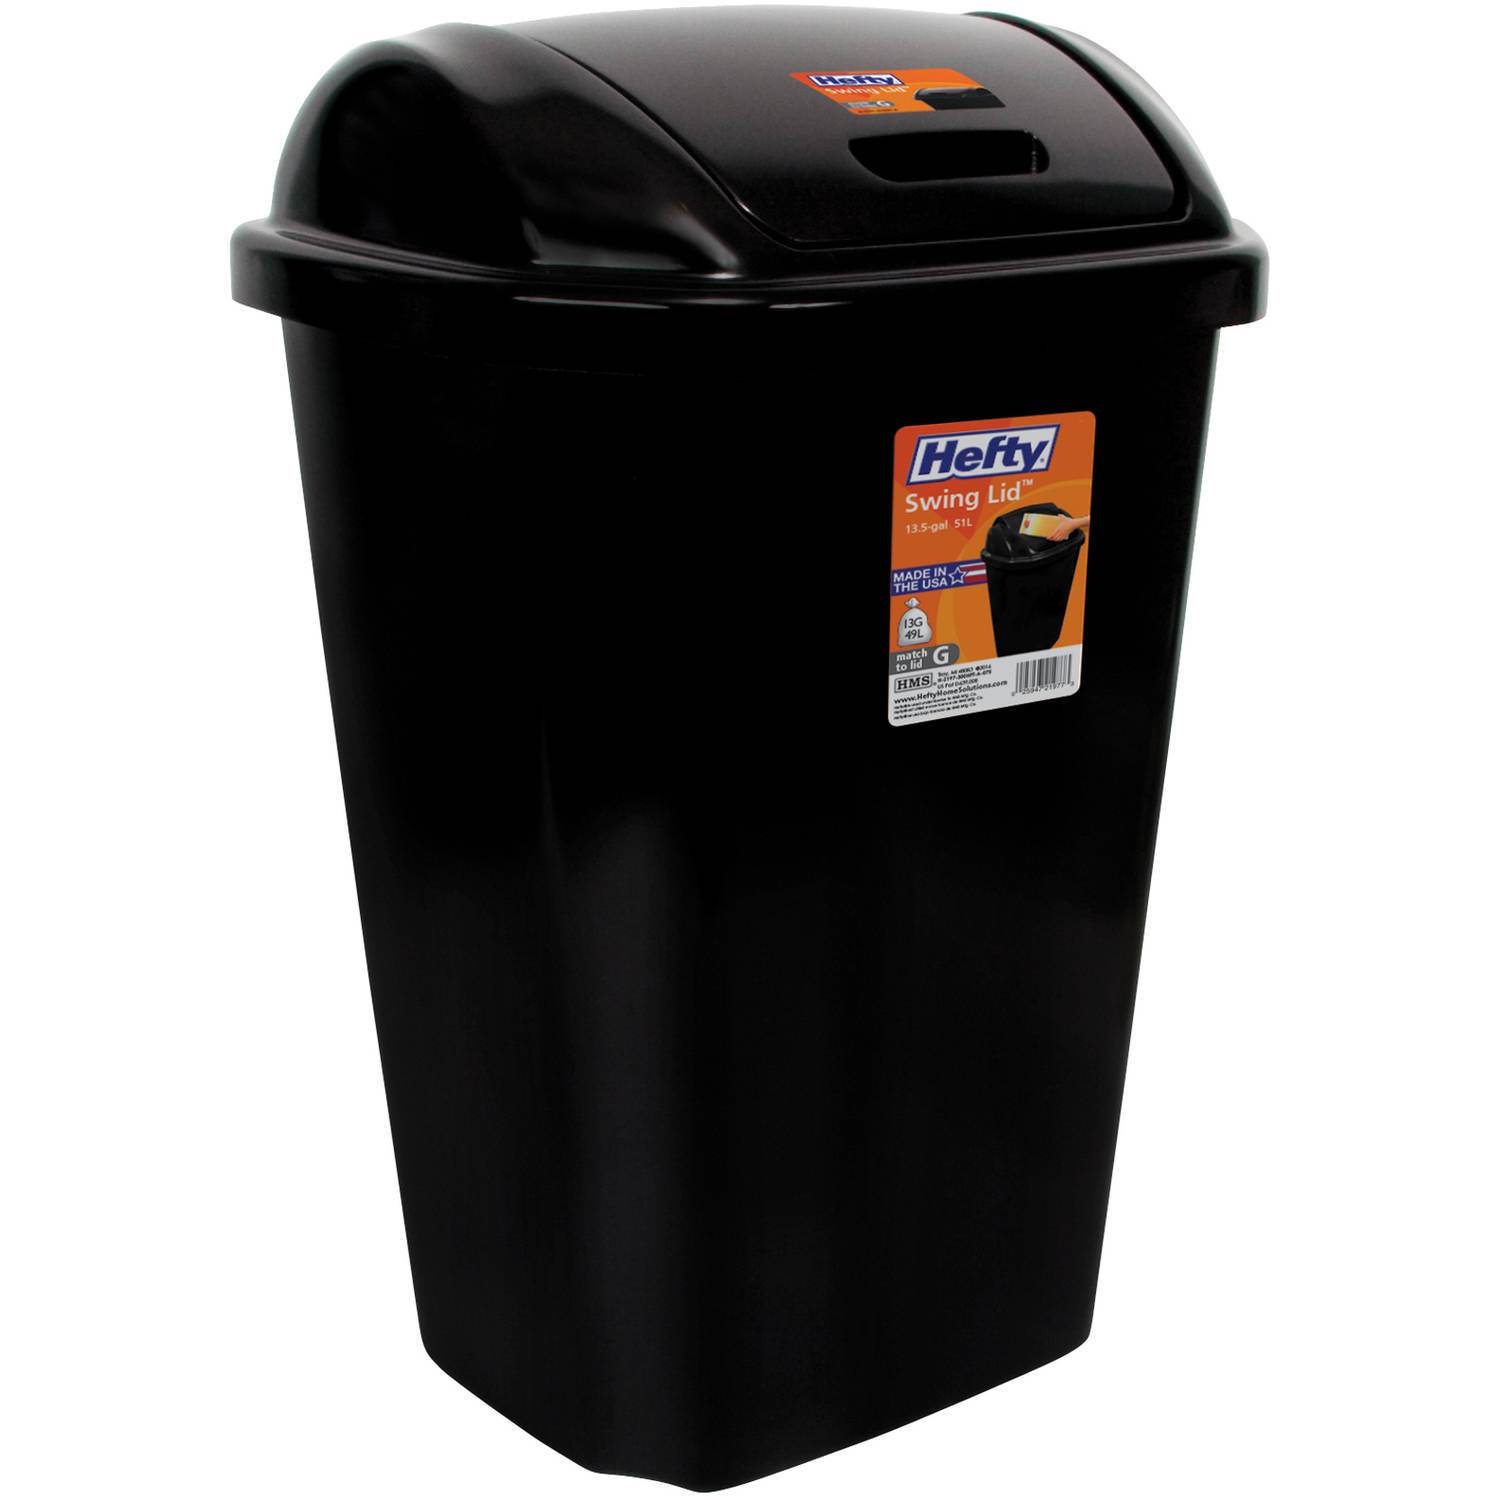 Hefty Swing-Lid 13.5 Gal Trash Can Black  sc 1 st  Walmart & Garbage Cans for Outdoors